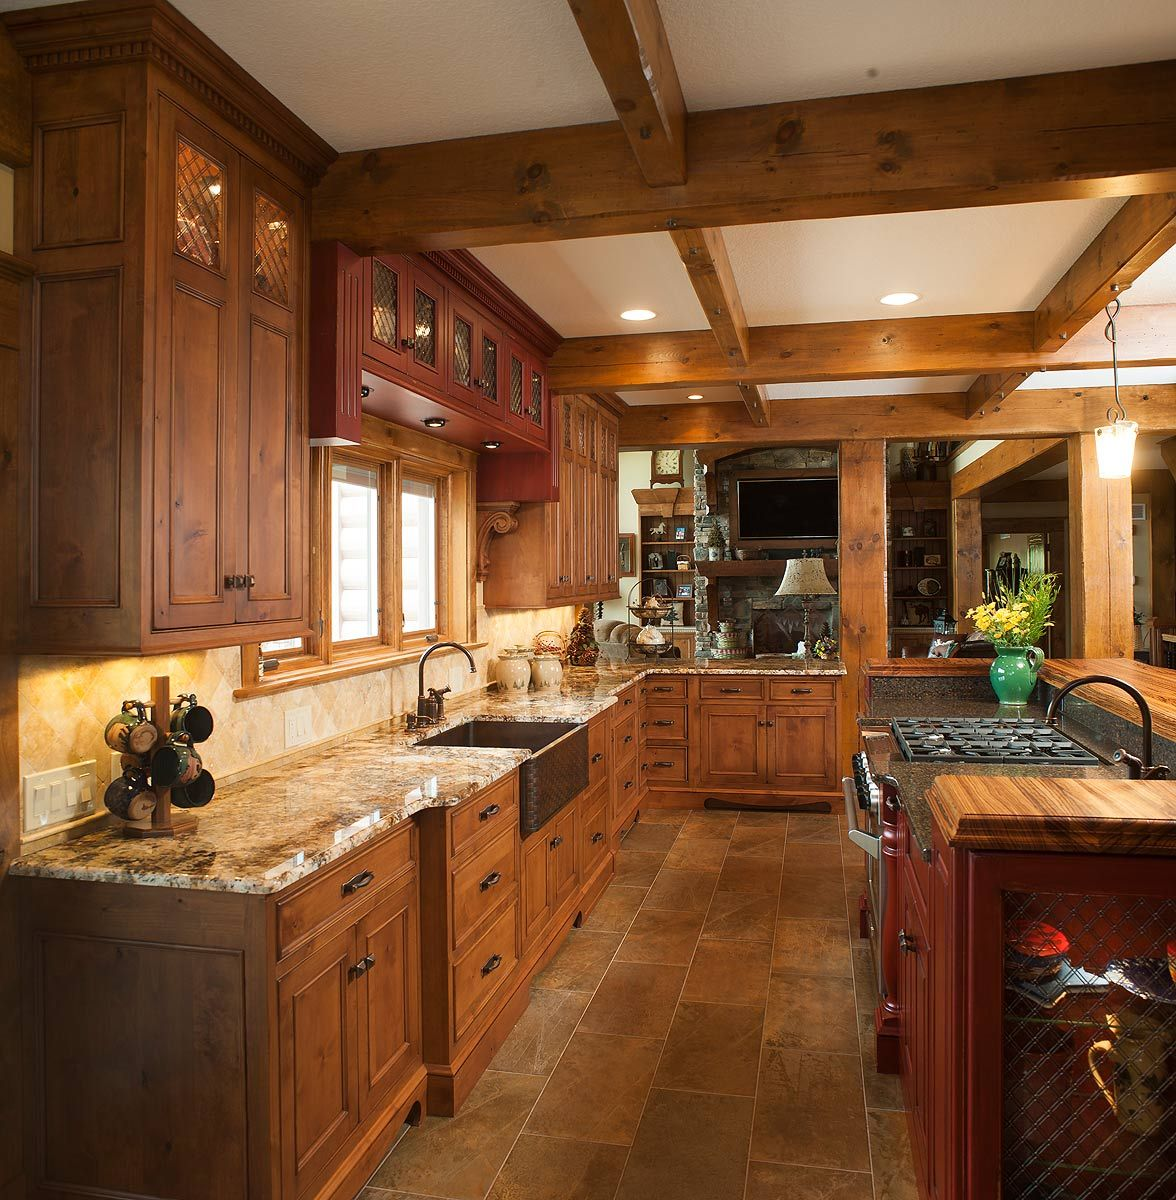 cabinet tiled knotty kitchen cabinets wood small glamorous irresistible pine furniture wells to as design ideas dw s alder guthrie otstanding unfinsihed also cabinetsguthrie impressive options and vintage luxurious